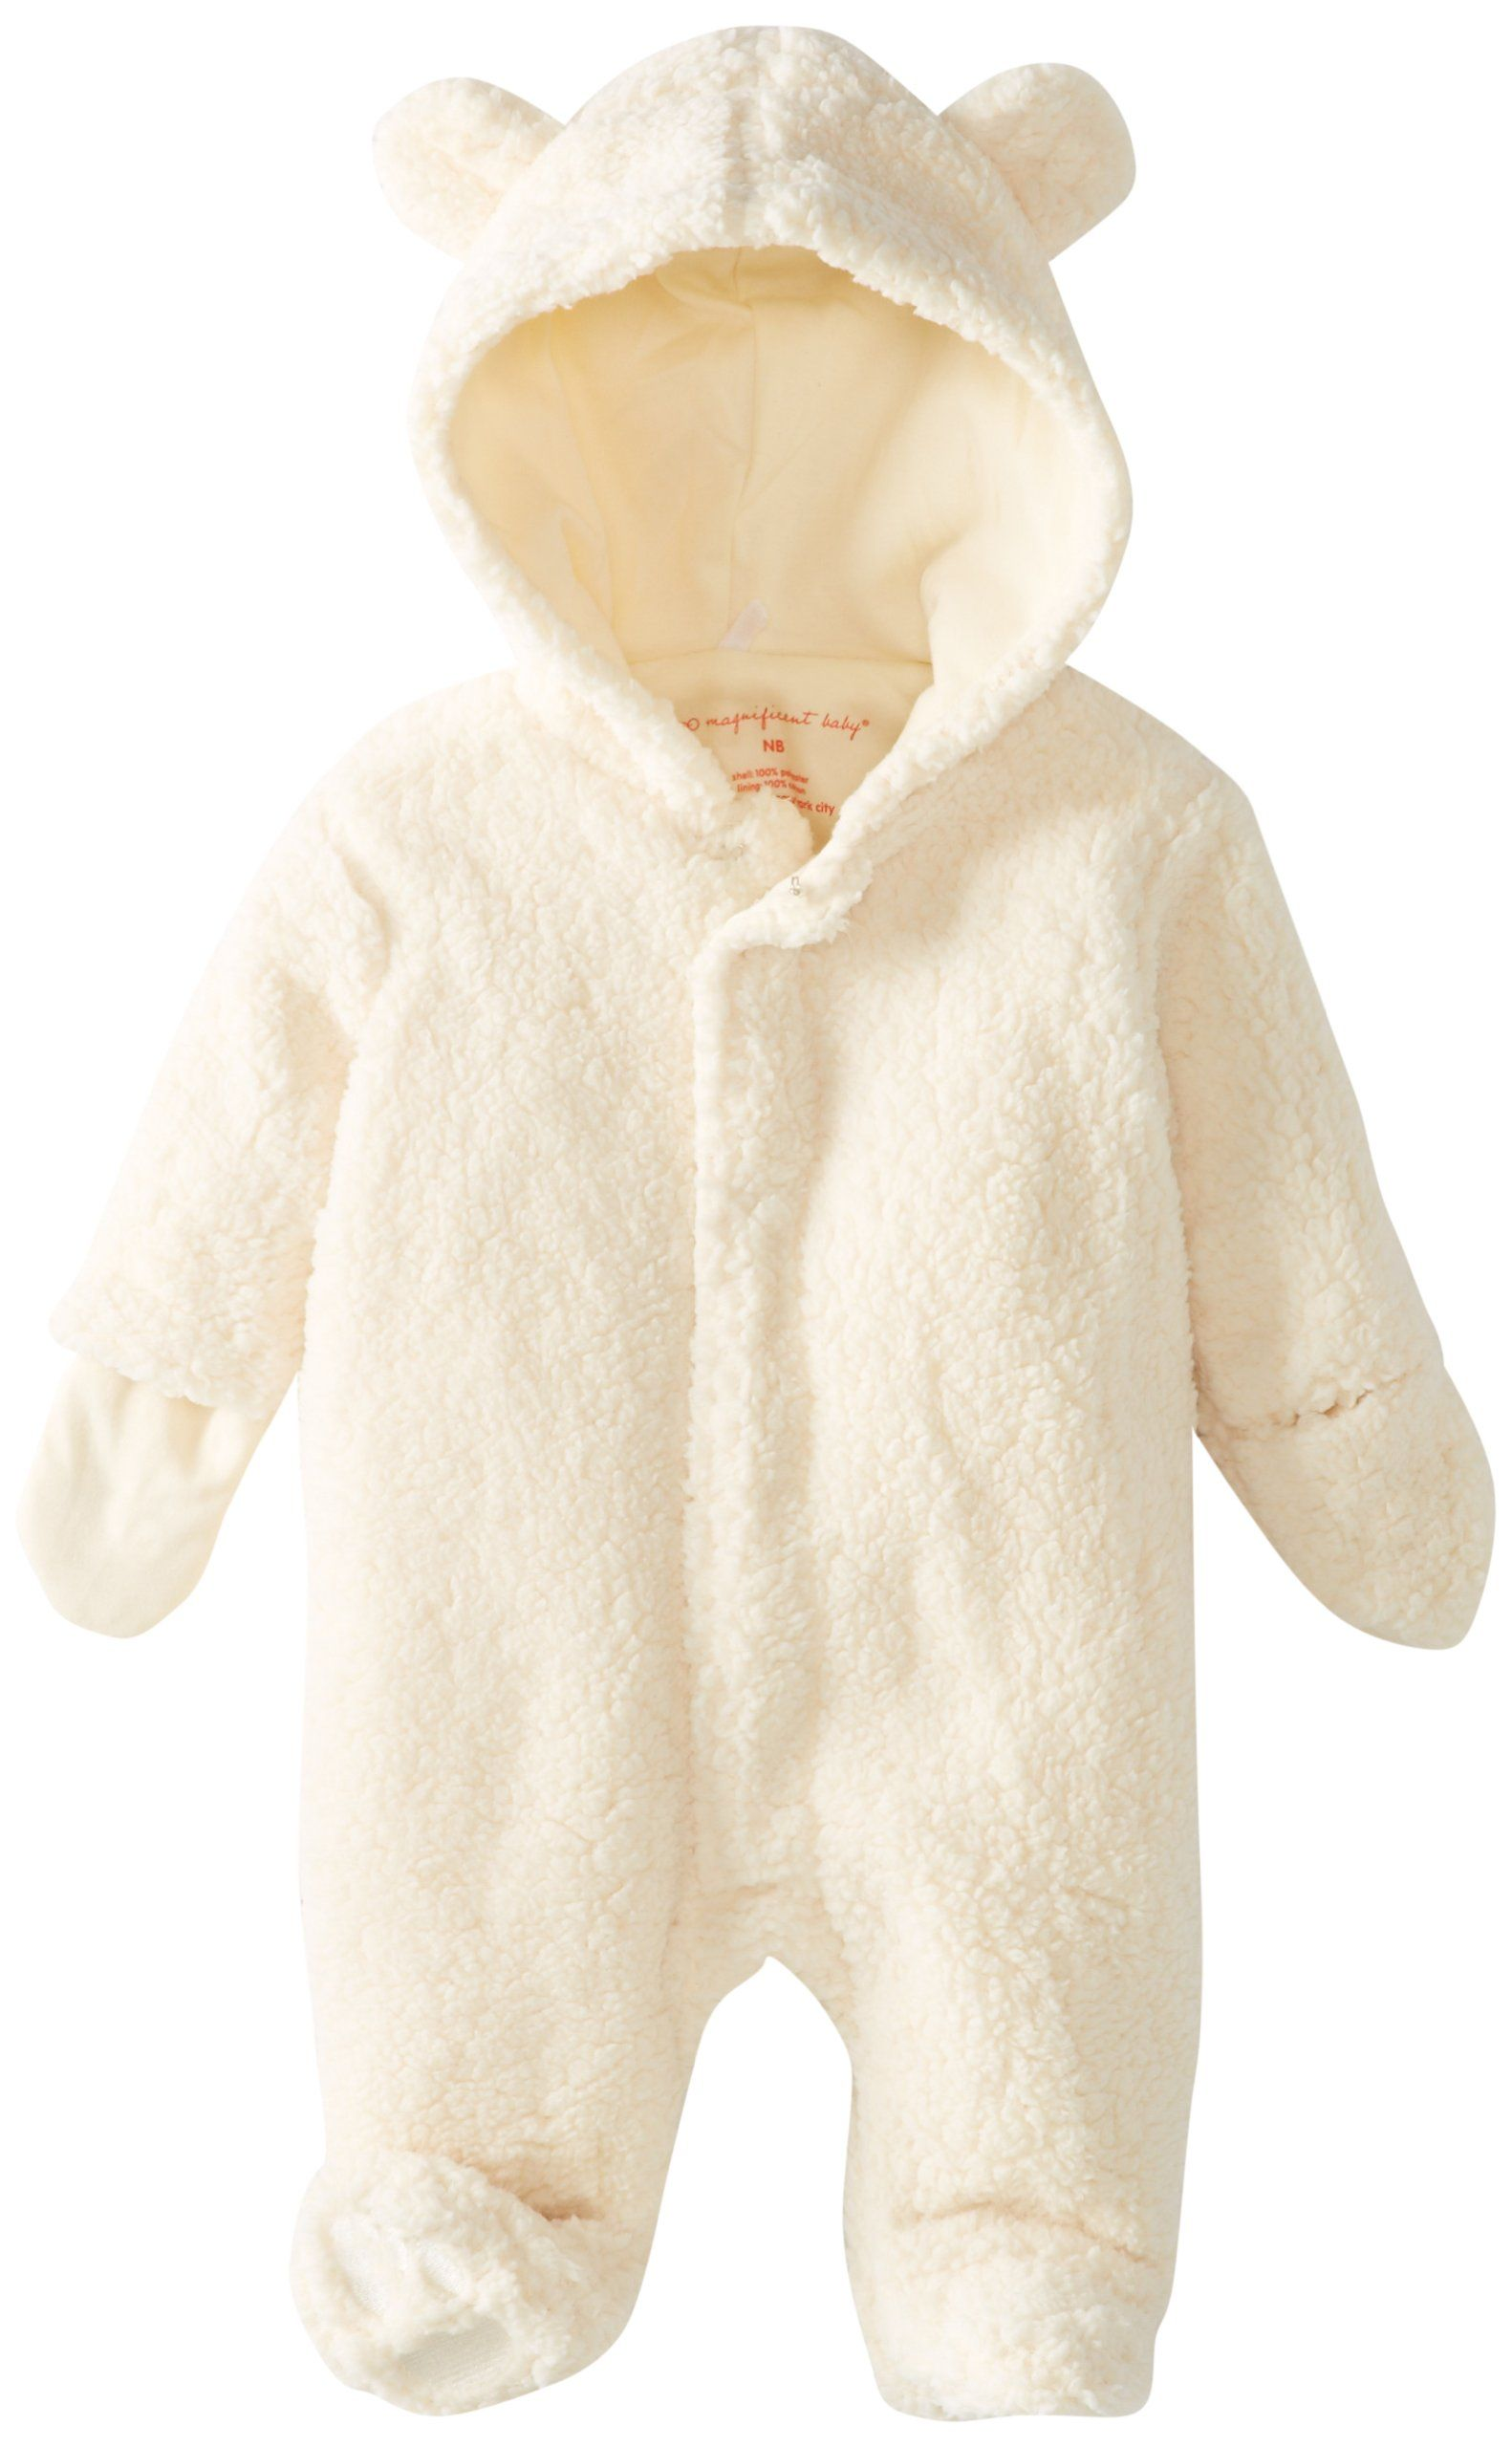 7502fc7d54737 Magnificent Baby Unisex-Baby Infant Hooded Bear Pram, Cream, 3 Months